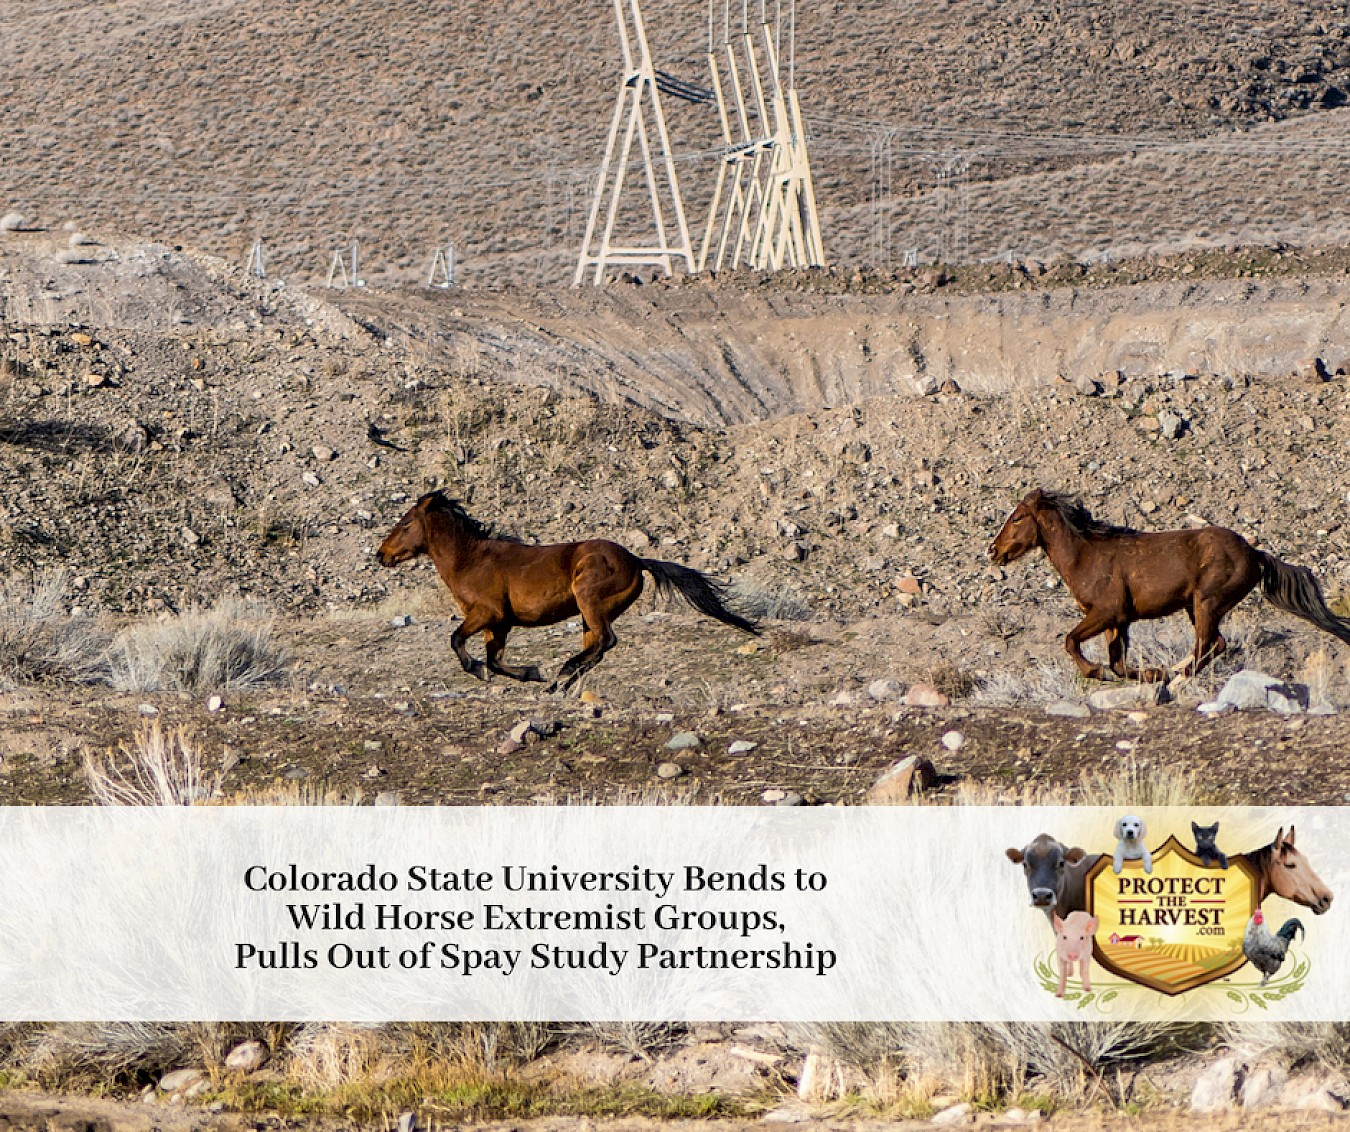 Colorado State University Responds To Pulling Out Of BLM Spay Study